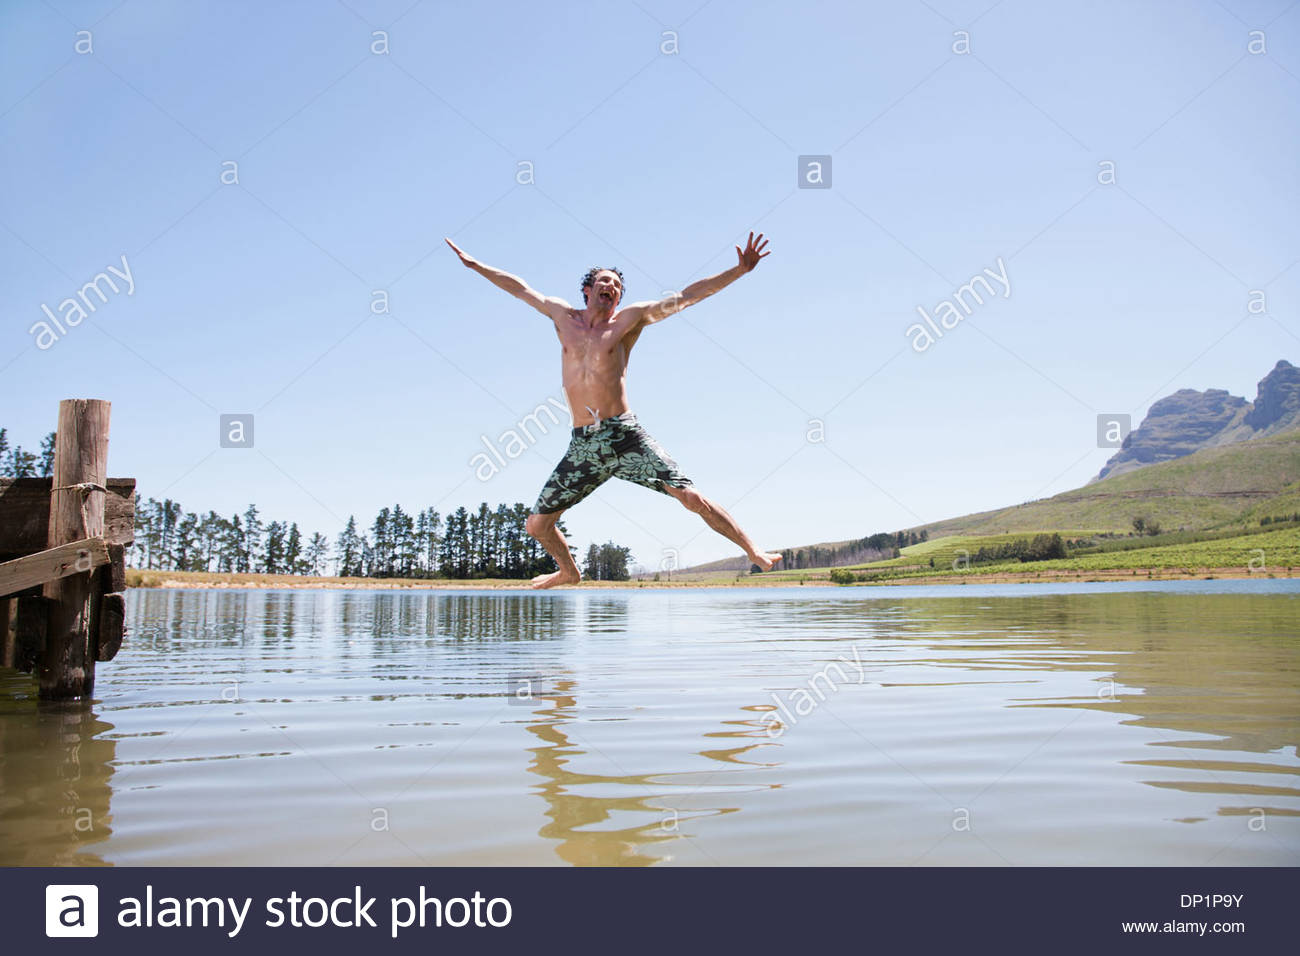 Man jumping off dock into lake - Stock Image